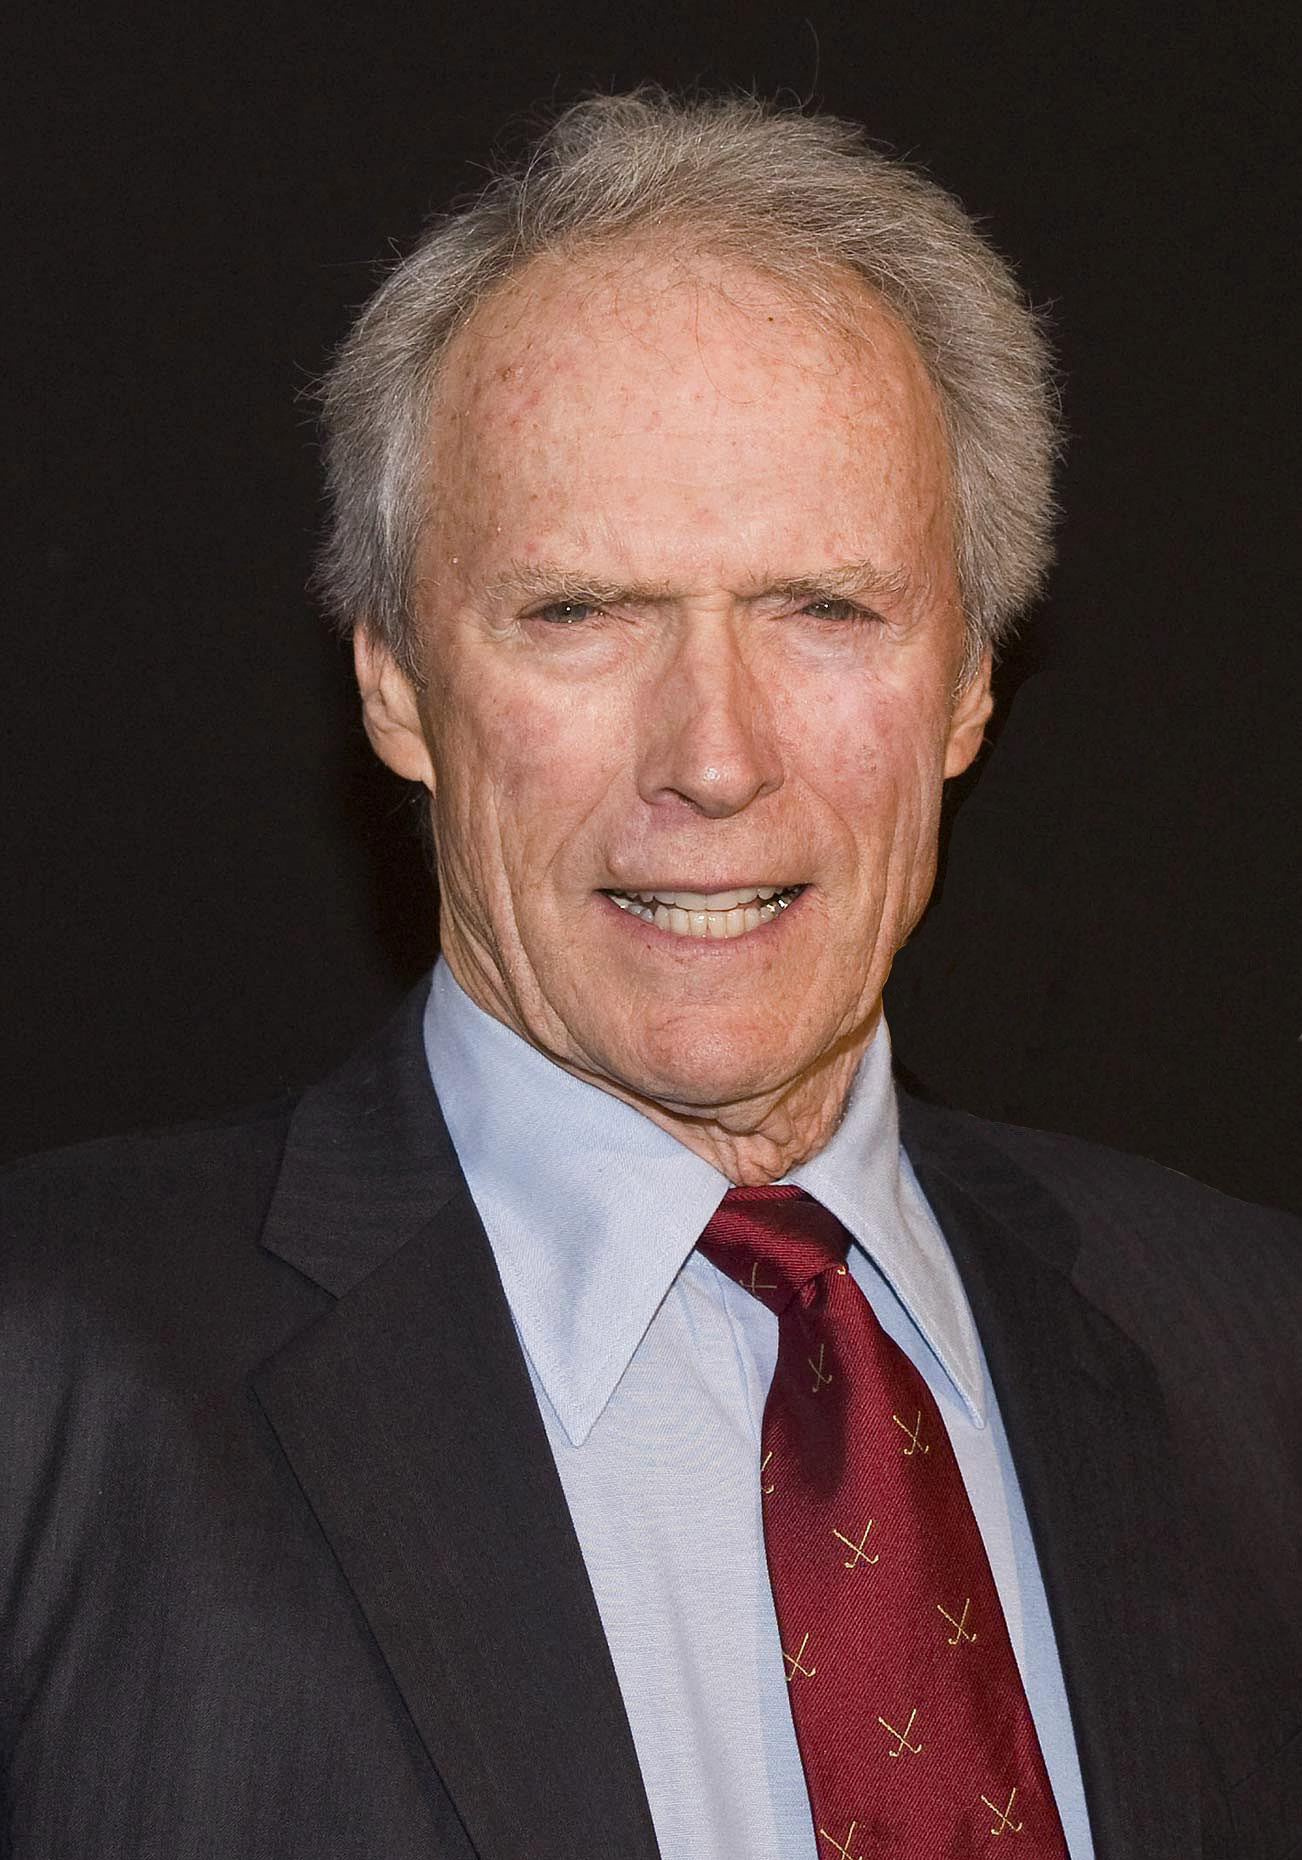 PEO_PhotoReporters_Clint-Eastwood